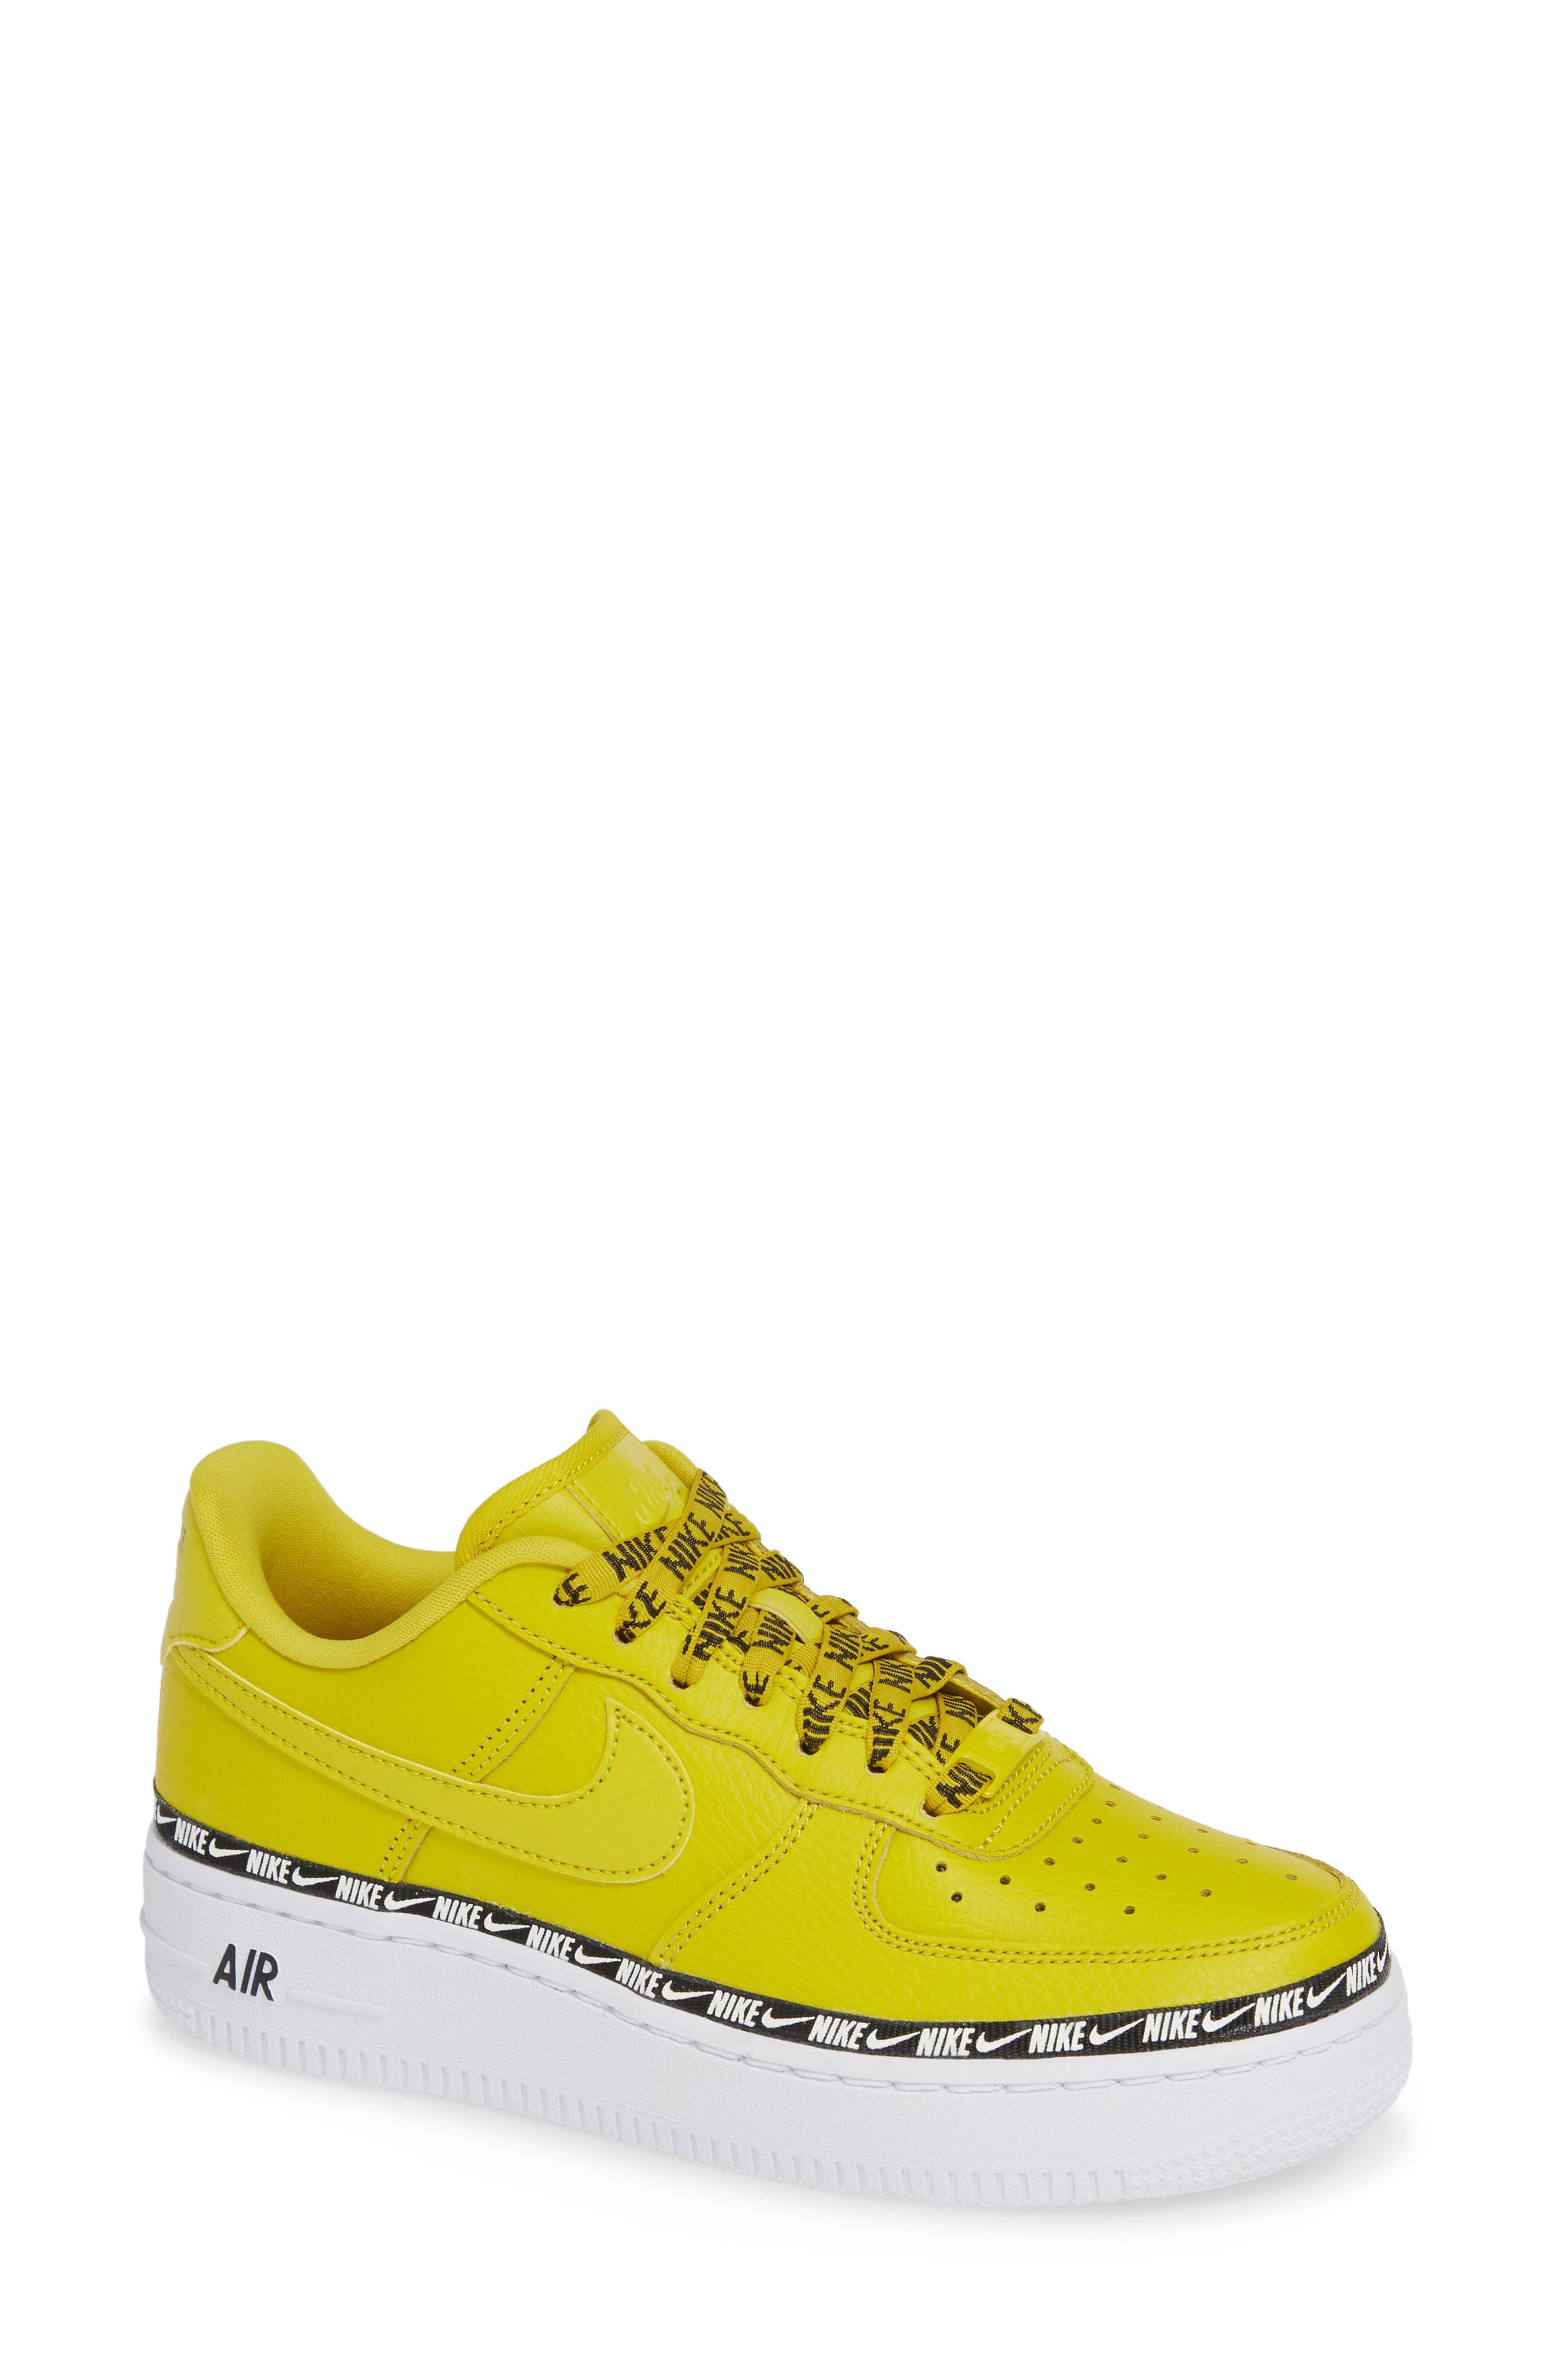 6a2af954a147c Lyst - Nike Yellow Air Force 1 Swoosh Tape Sneakers in Yellow